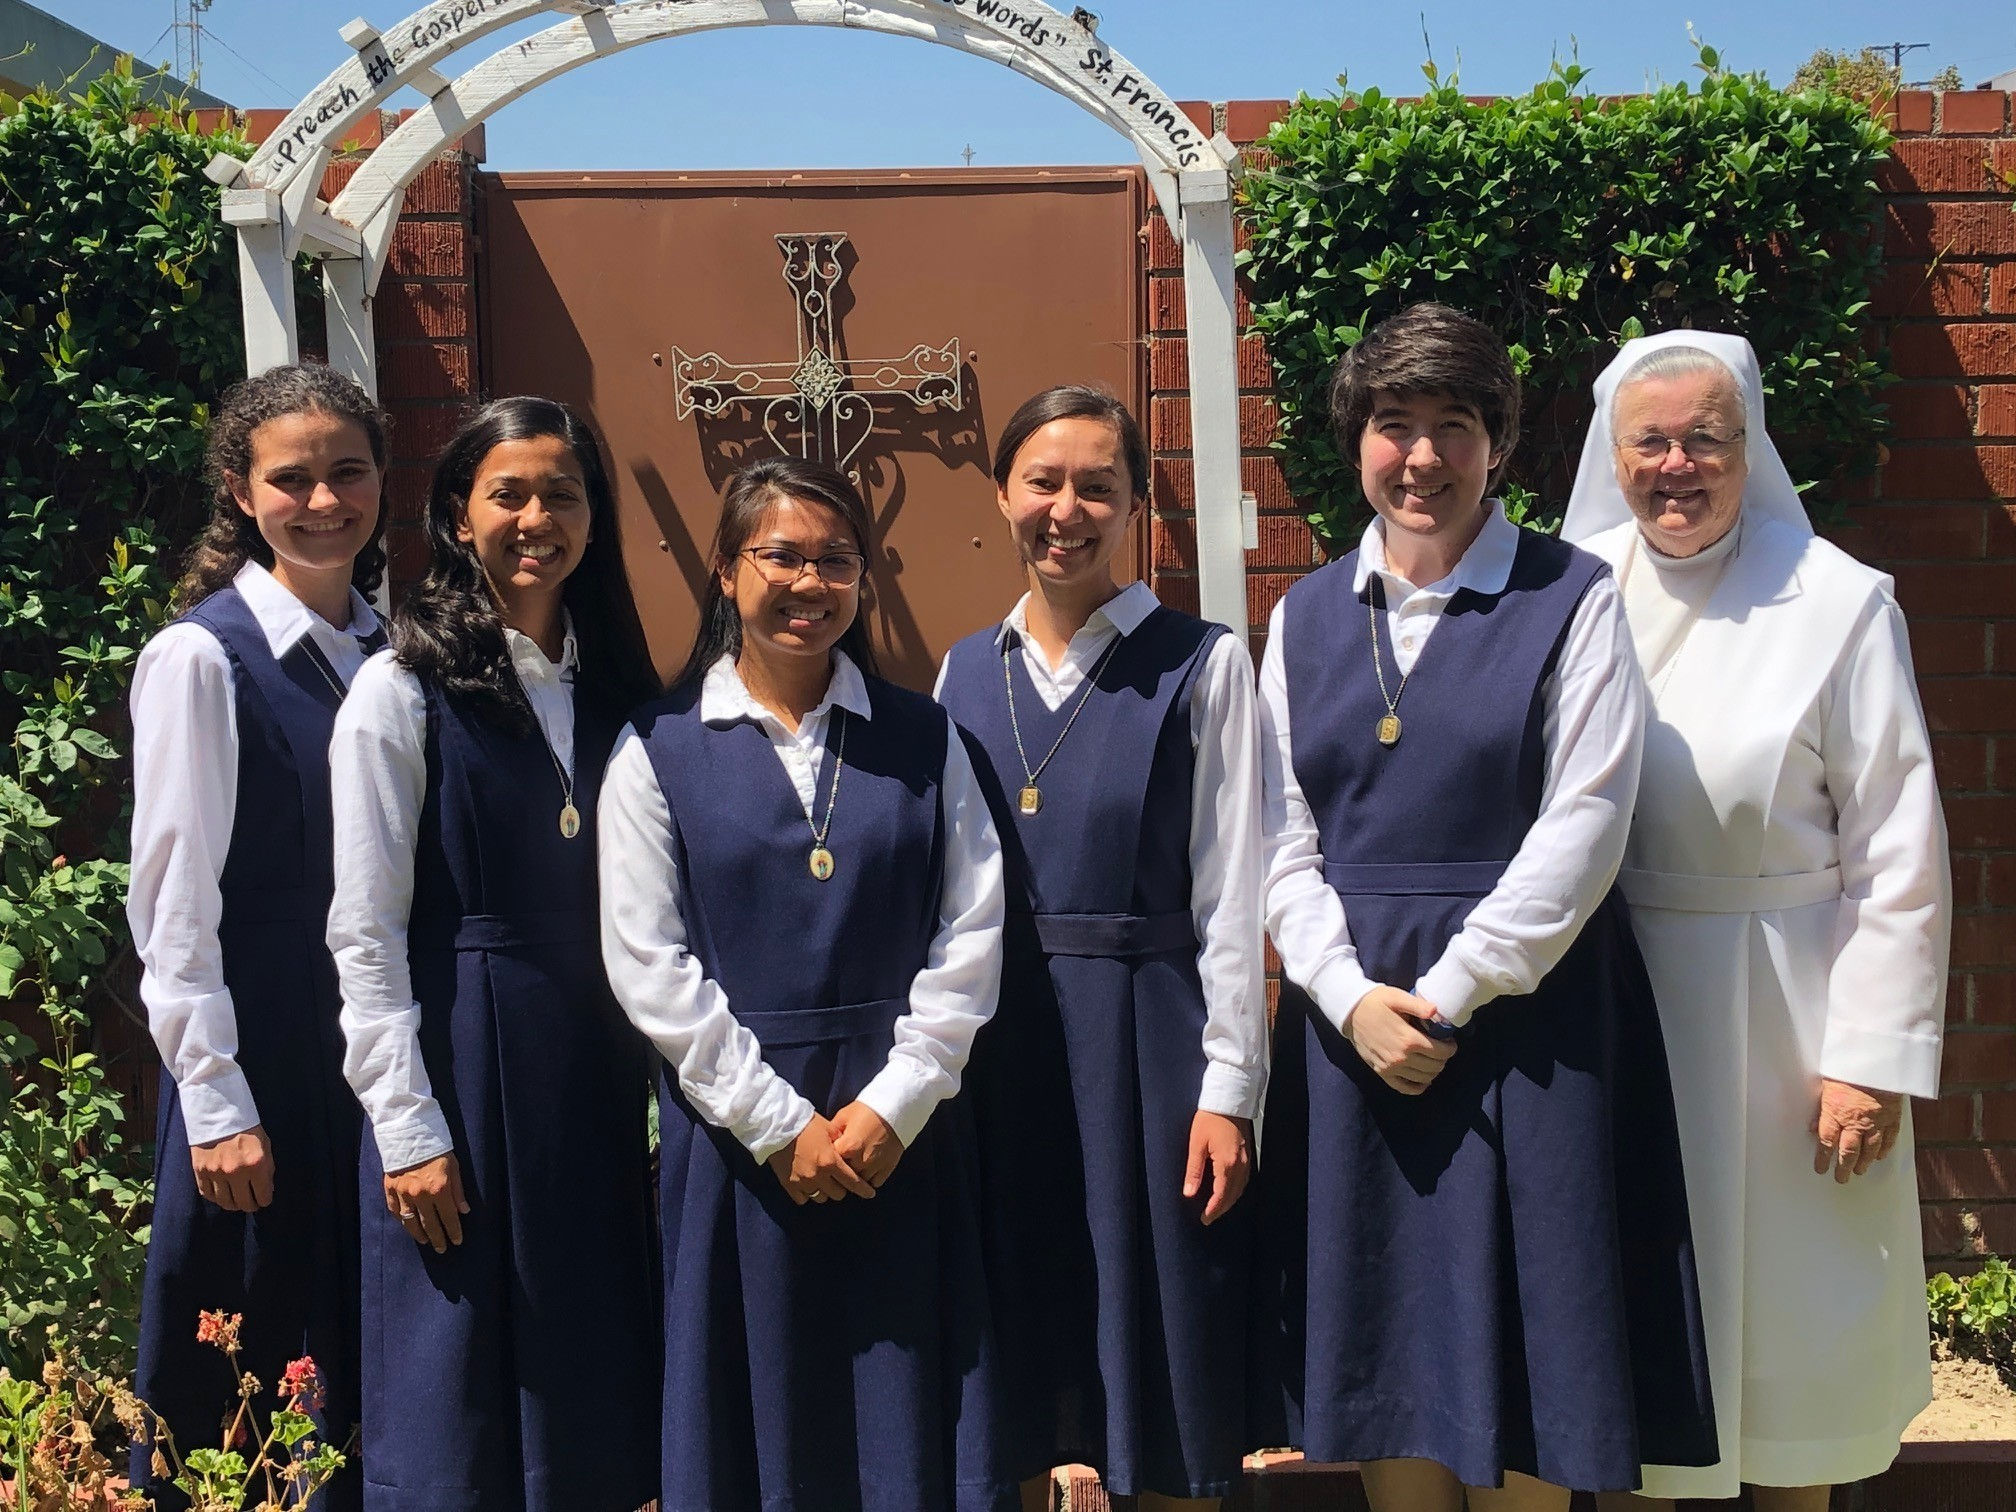 Postulates at Bellflower, CA, Formation House training to become Sisters